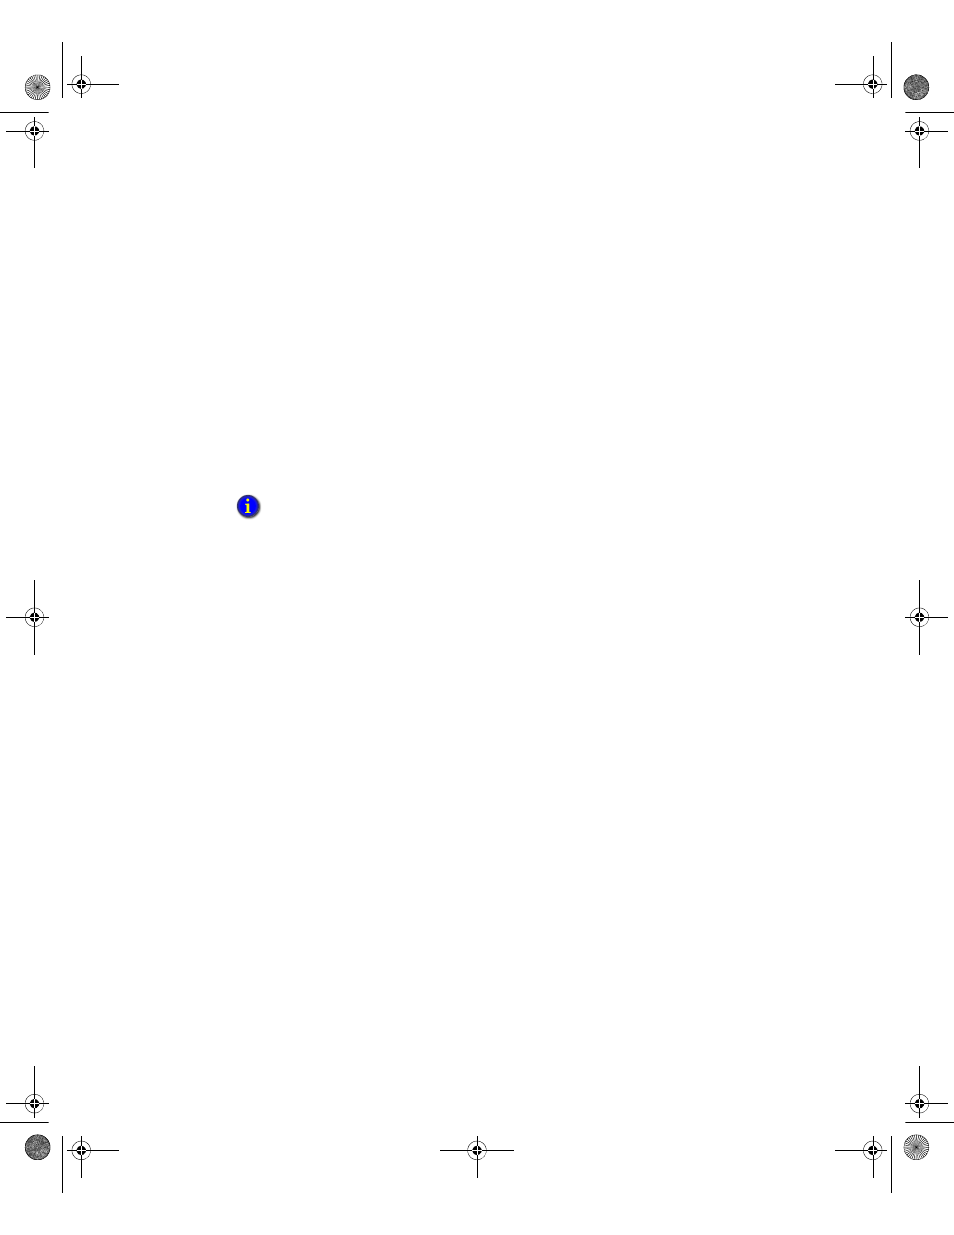 Factorytalk activation, Connectivity, Rslinx enterprise | Rockwell  Automation FactoryTalk View Site Edition Installation Guide User Manual |  Page 21 / 173